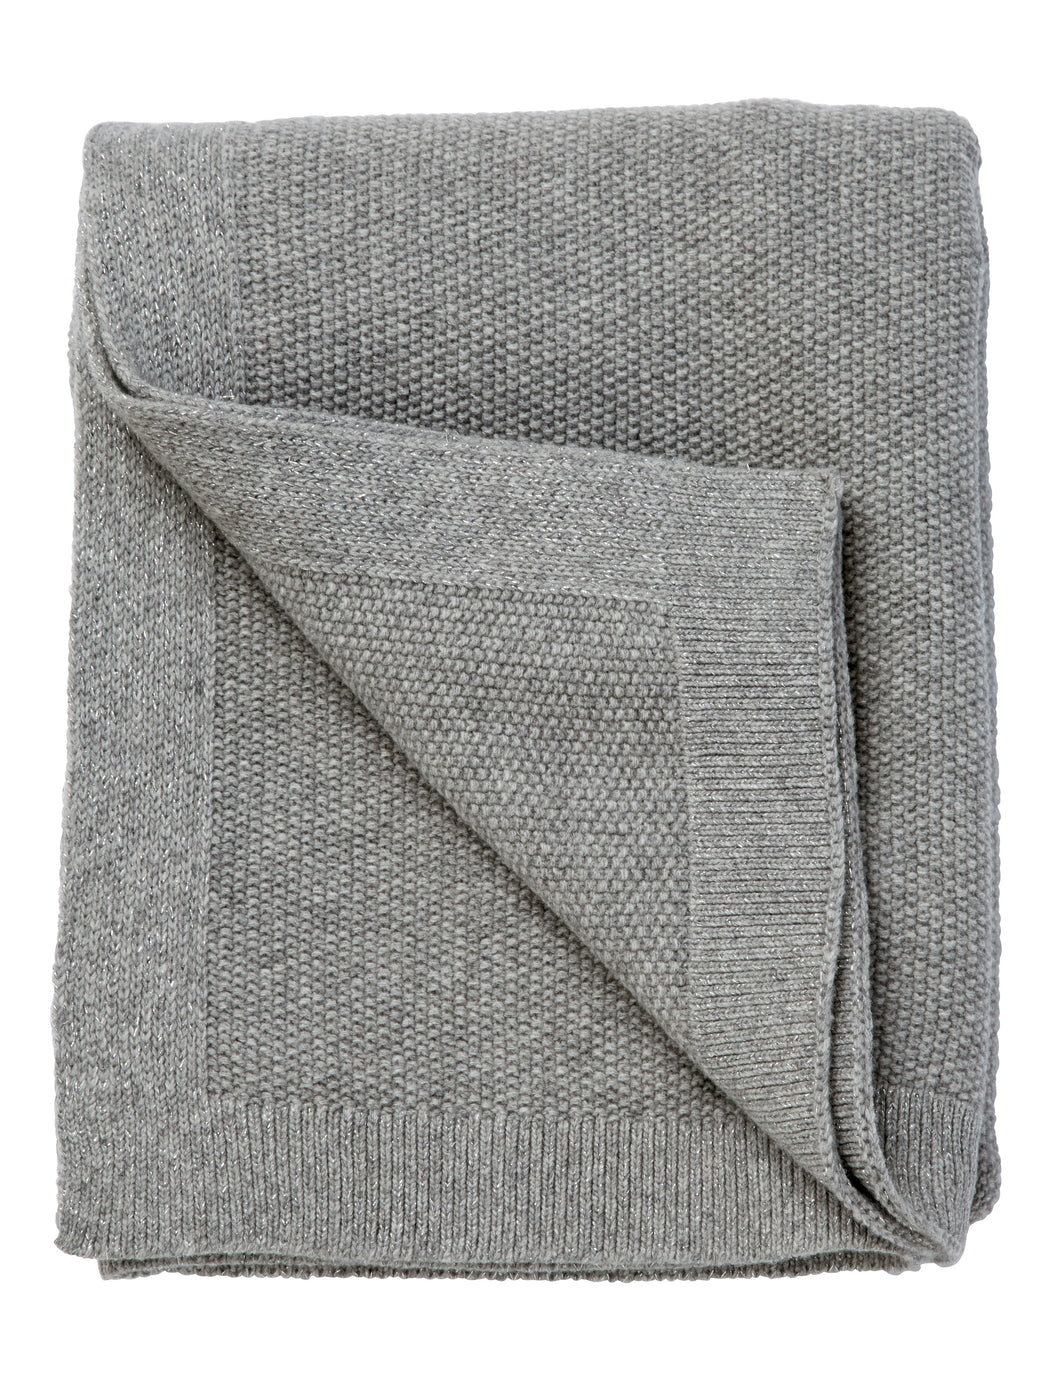 SeedStitch blanket, light grey/silver